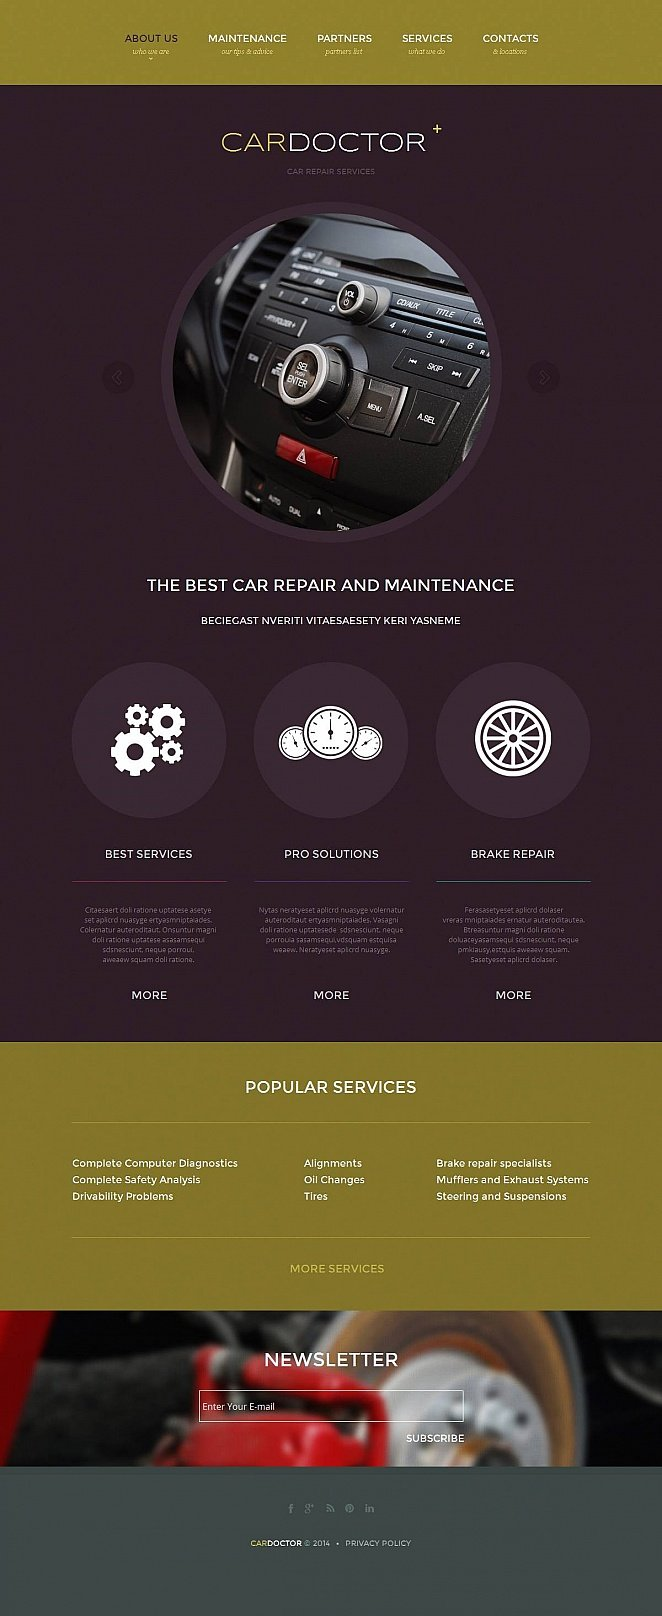 Creative Template with Flat UI to Promote Car Repair Services - image